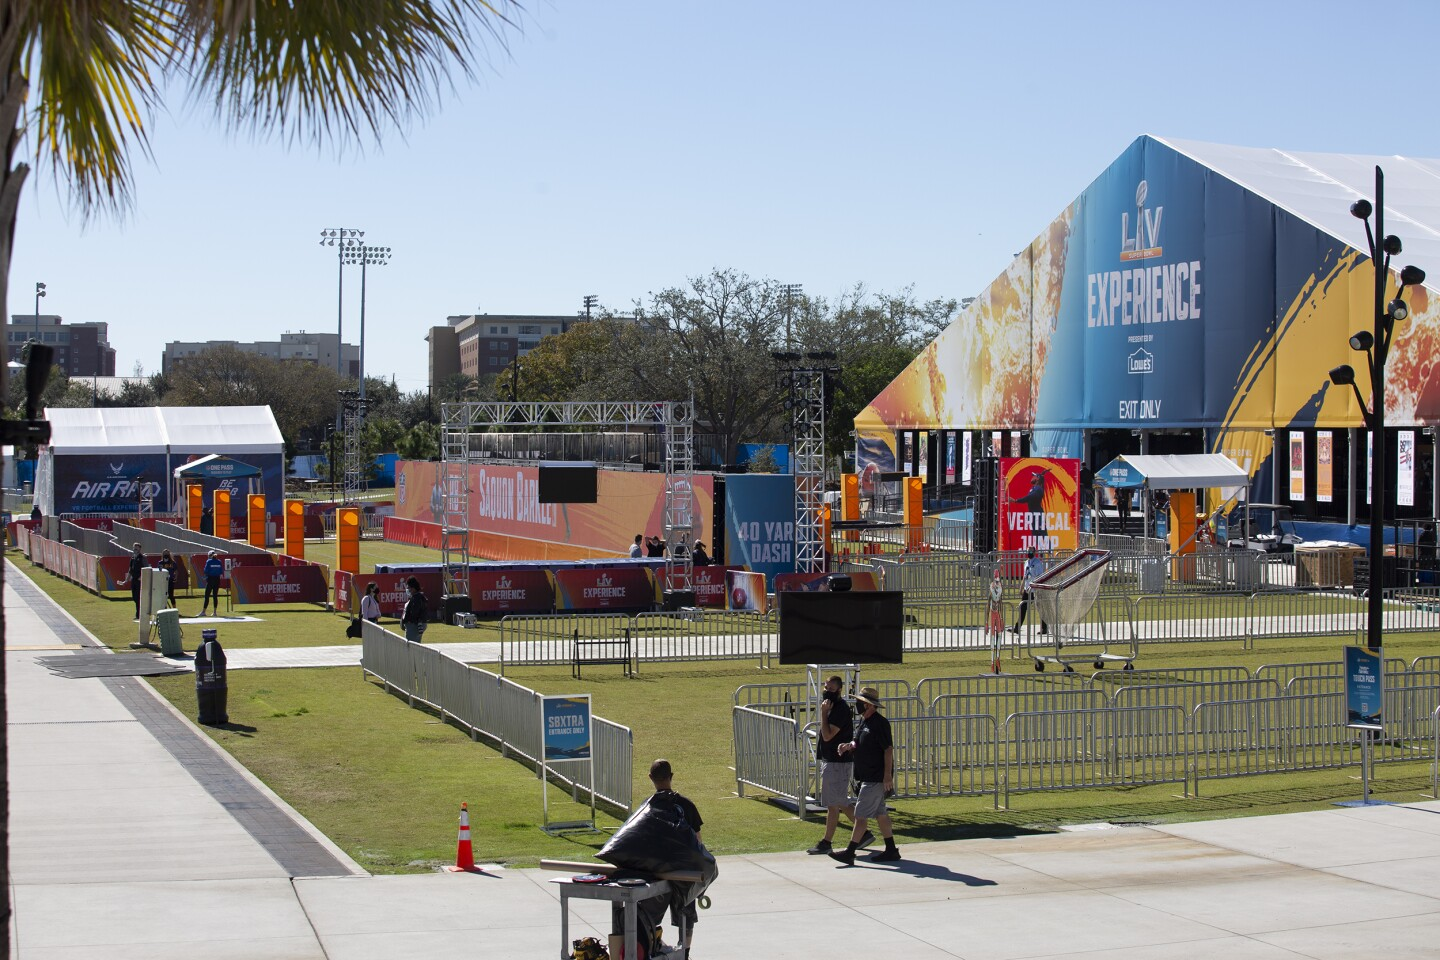 Exterior view of the Super Bowl Experience